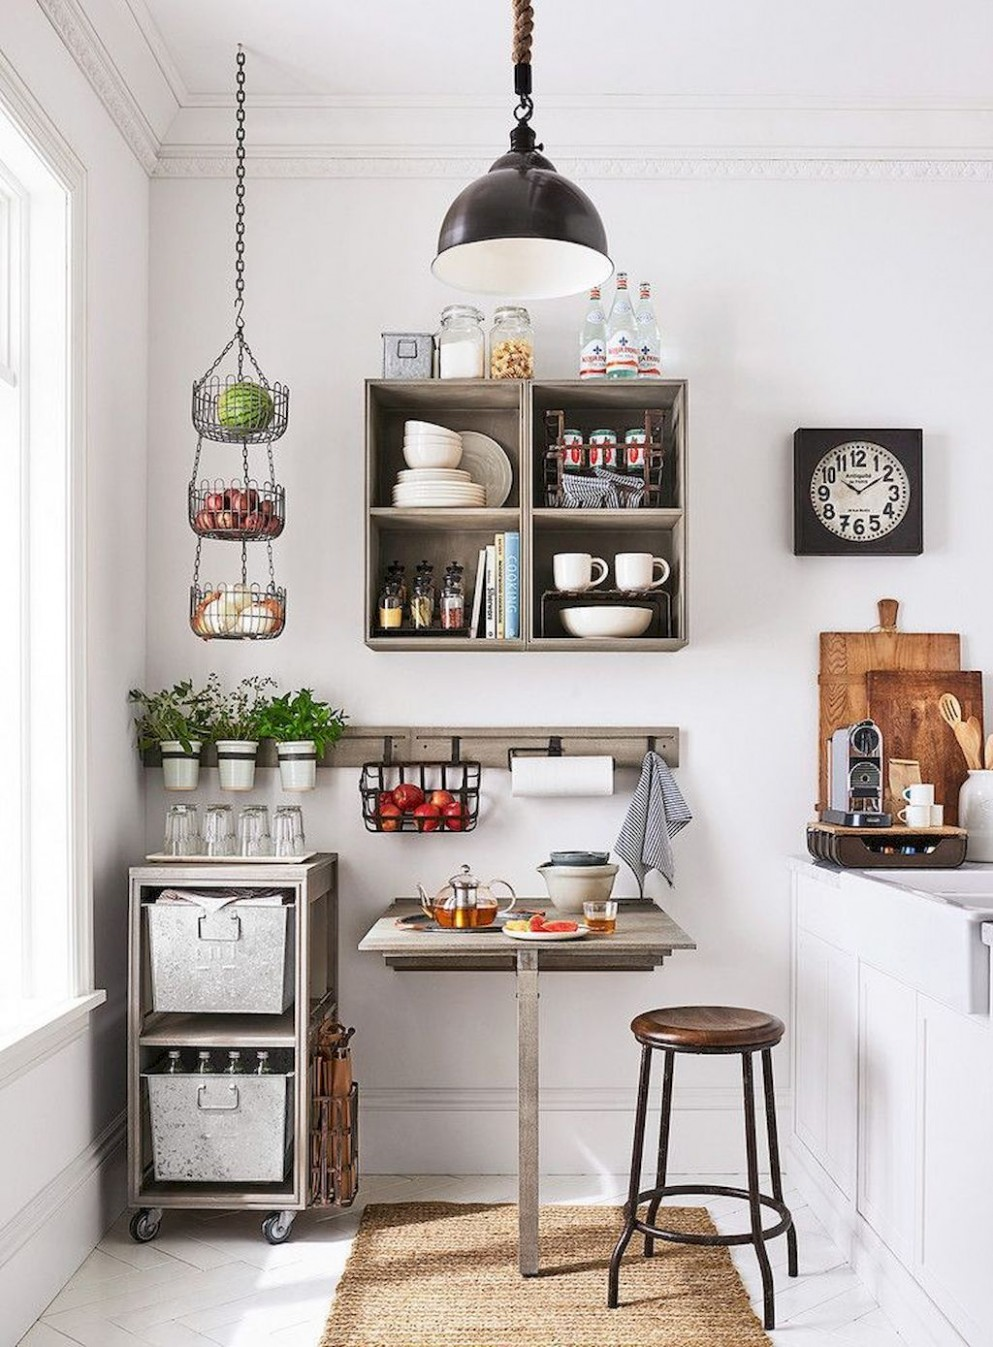 12 First Apartment Decorating Ideas on A Budget  Small apartment  - Apartment Kitchen Wall Decor Ideas